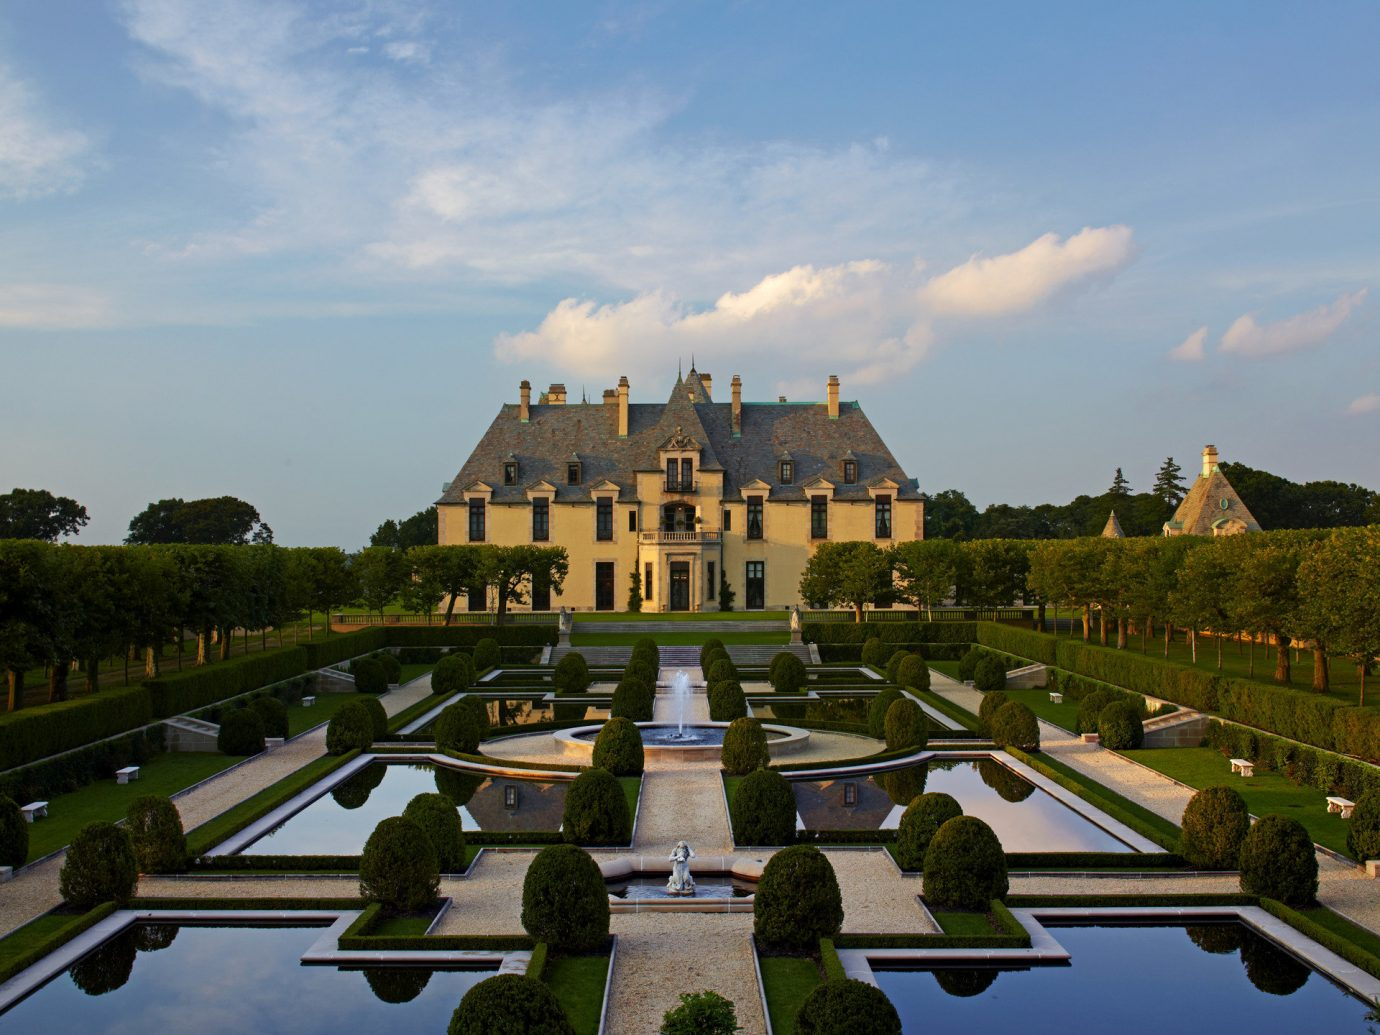 Hotels Trip Ideas sky outdoor landmark building City estate château reflecting pool vacation palace tourism reflection town square cityscape Garden park road day highway